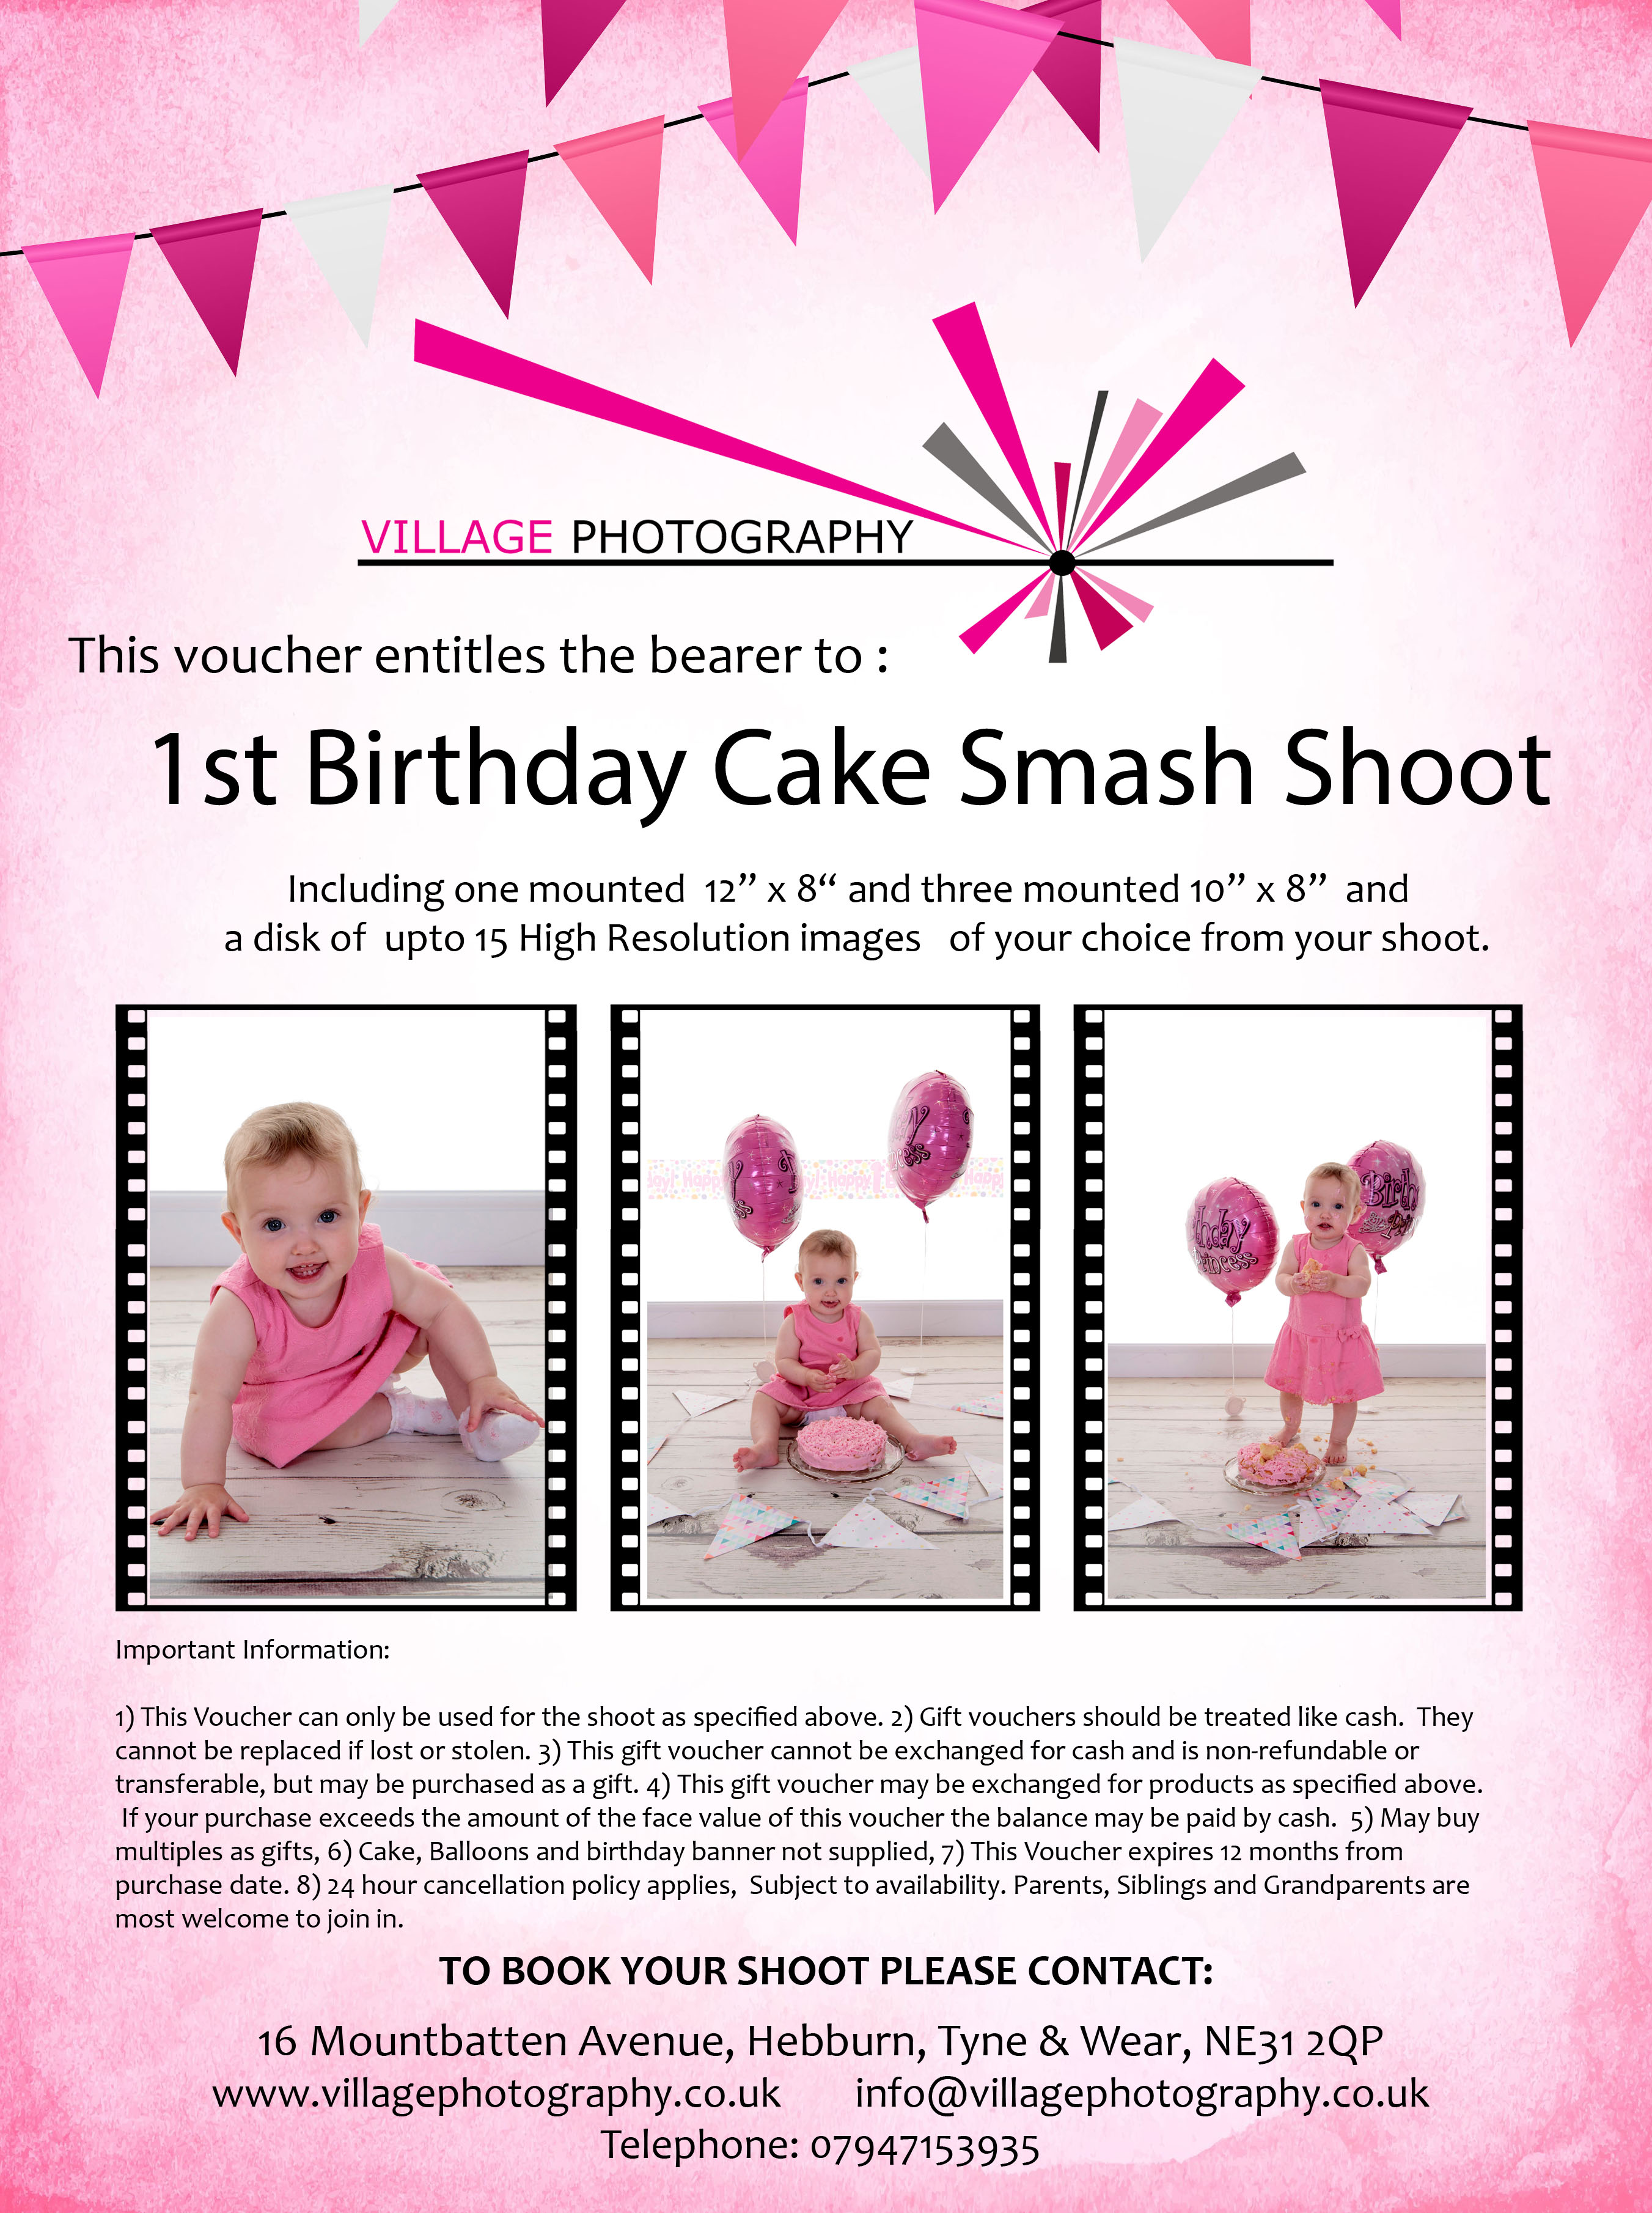 1st Birthday Cake Smash Package 3 Girl Village Photography